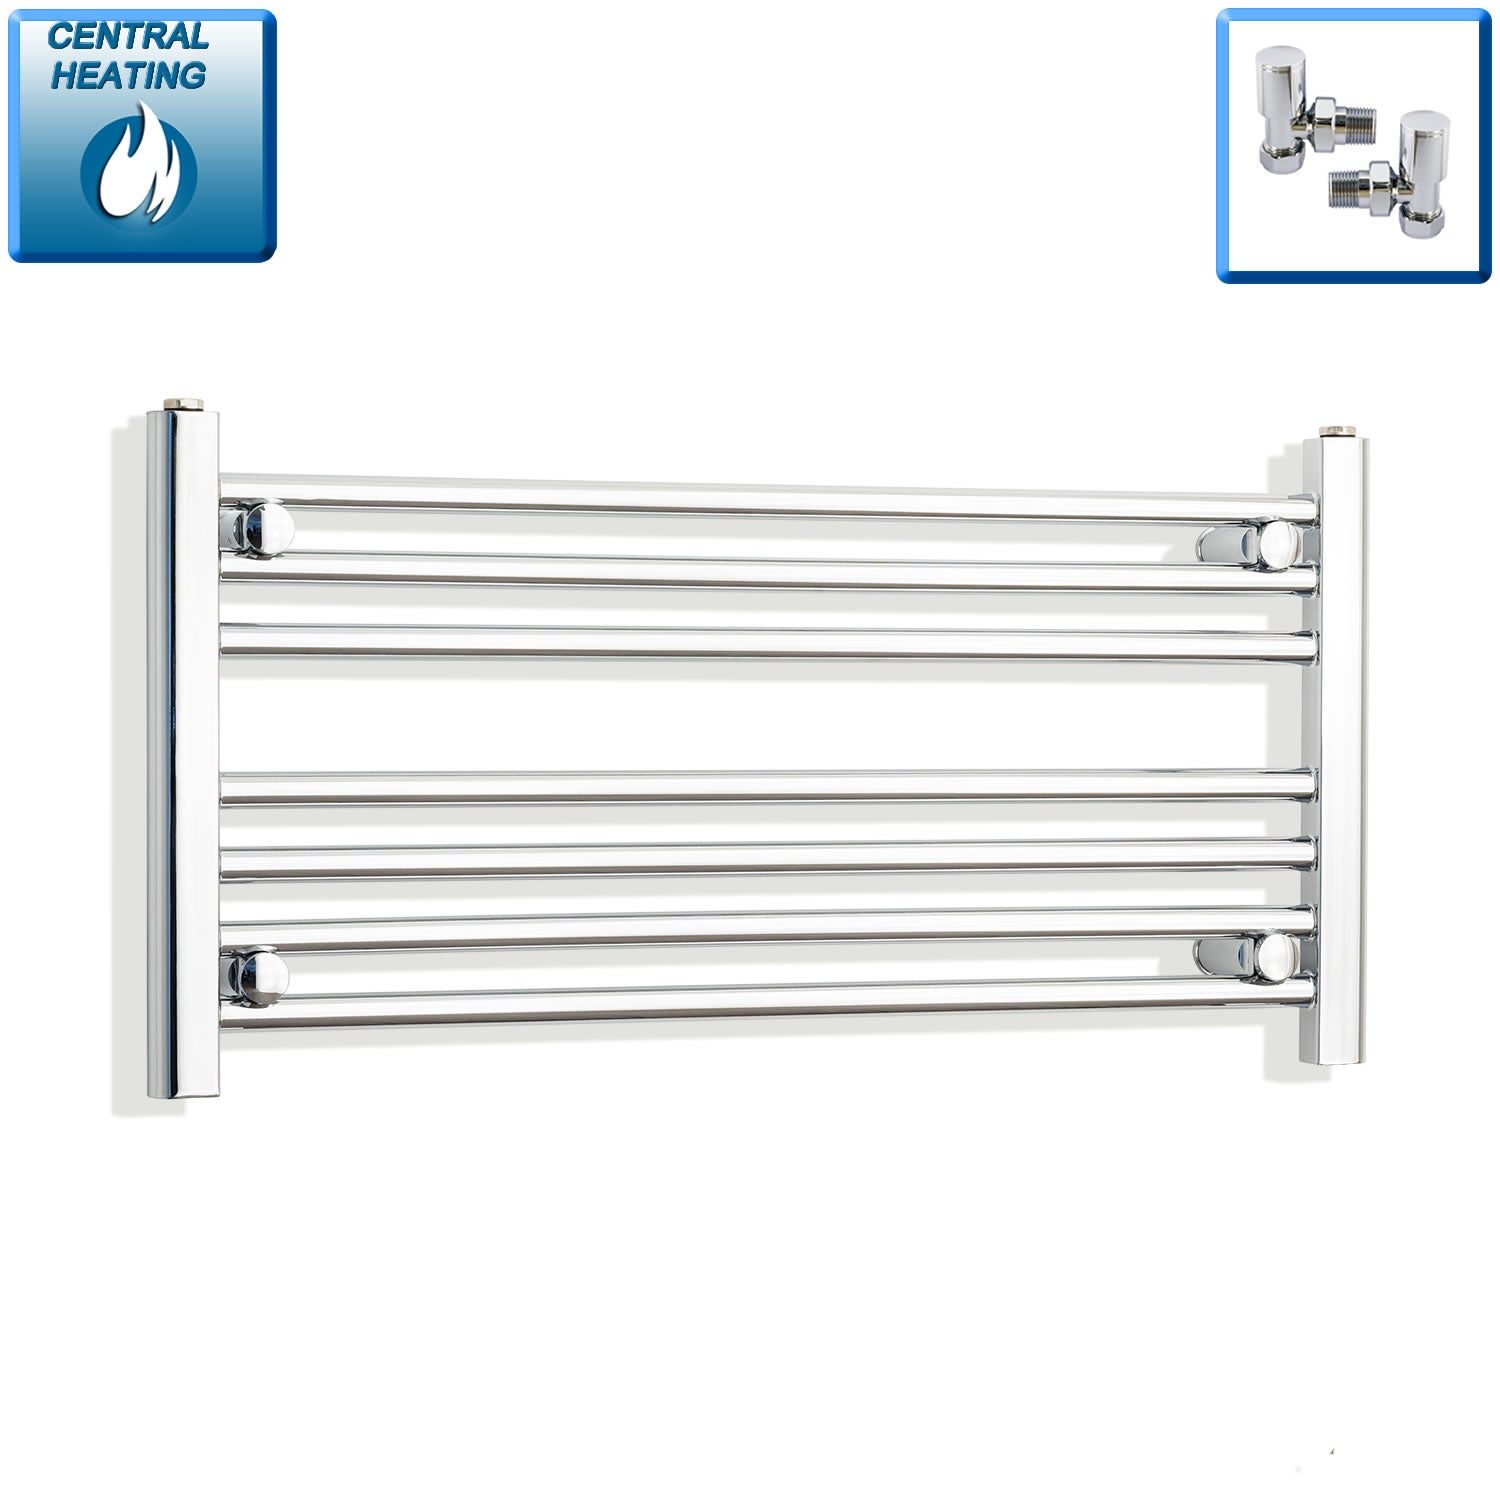 850mm Wide 400mm High Chrome Towel Rail Radiator With Angled Valve